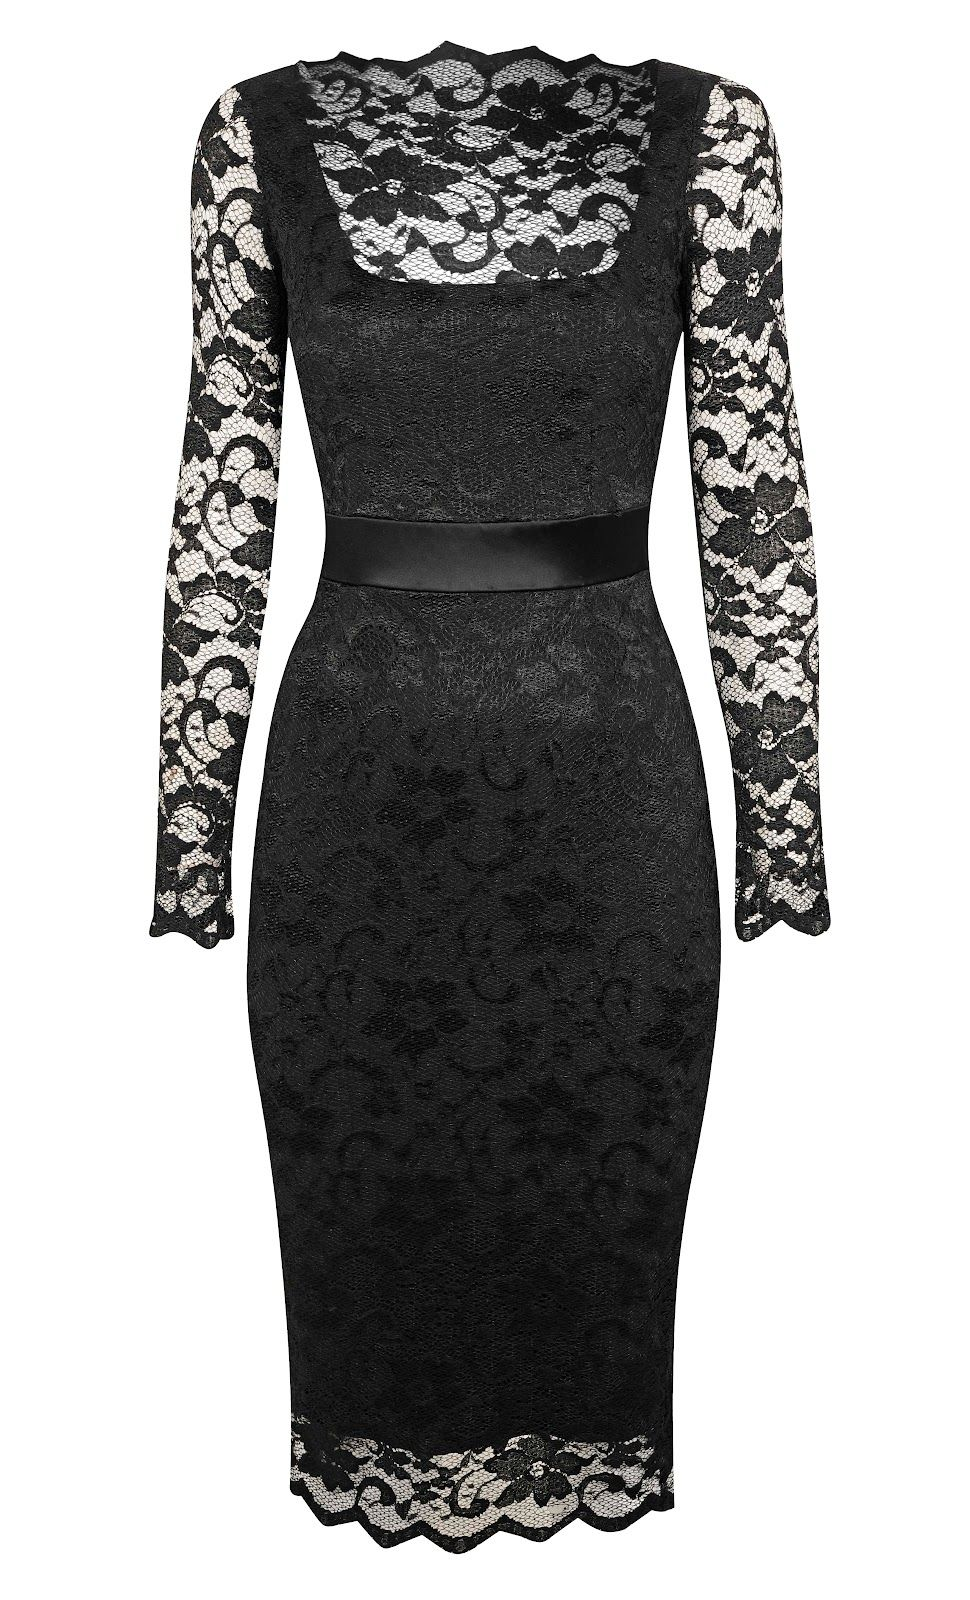 17 Best images about LBD on Pinterest | Emma watson, Cocktail ...